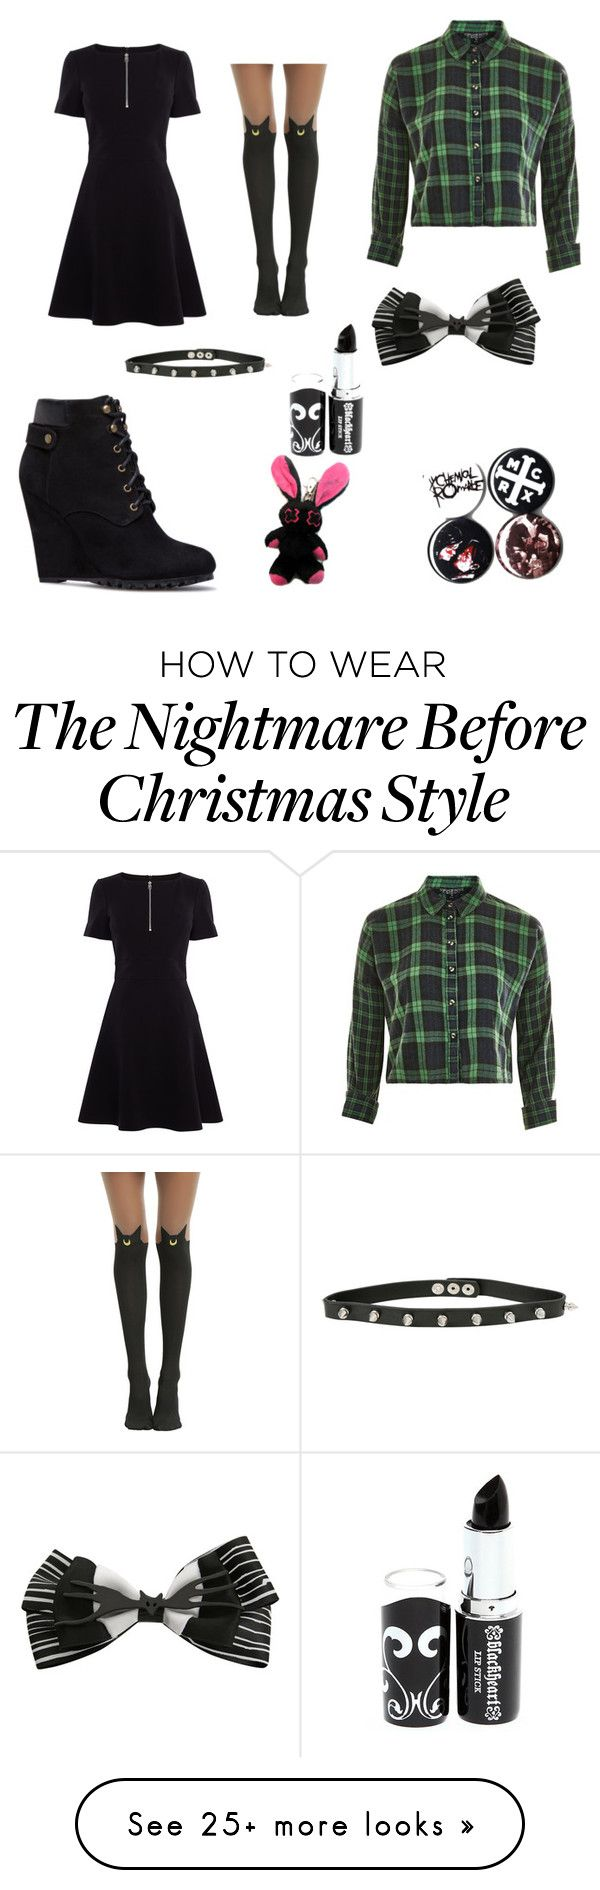 """""""Untitled #115"""" by thatbandgirl24 on Polyvore featuring Karen Millen, Topshop, Hot Topic, Disney and Blackheart"""